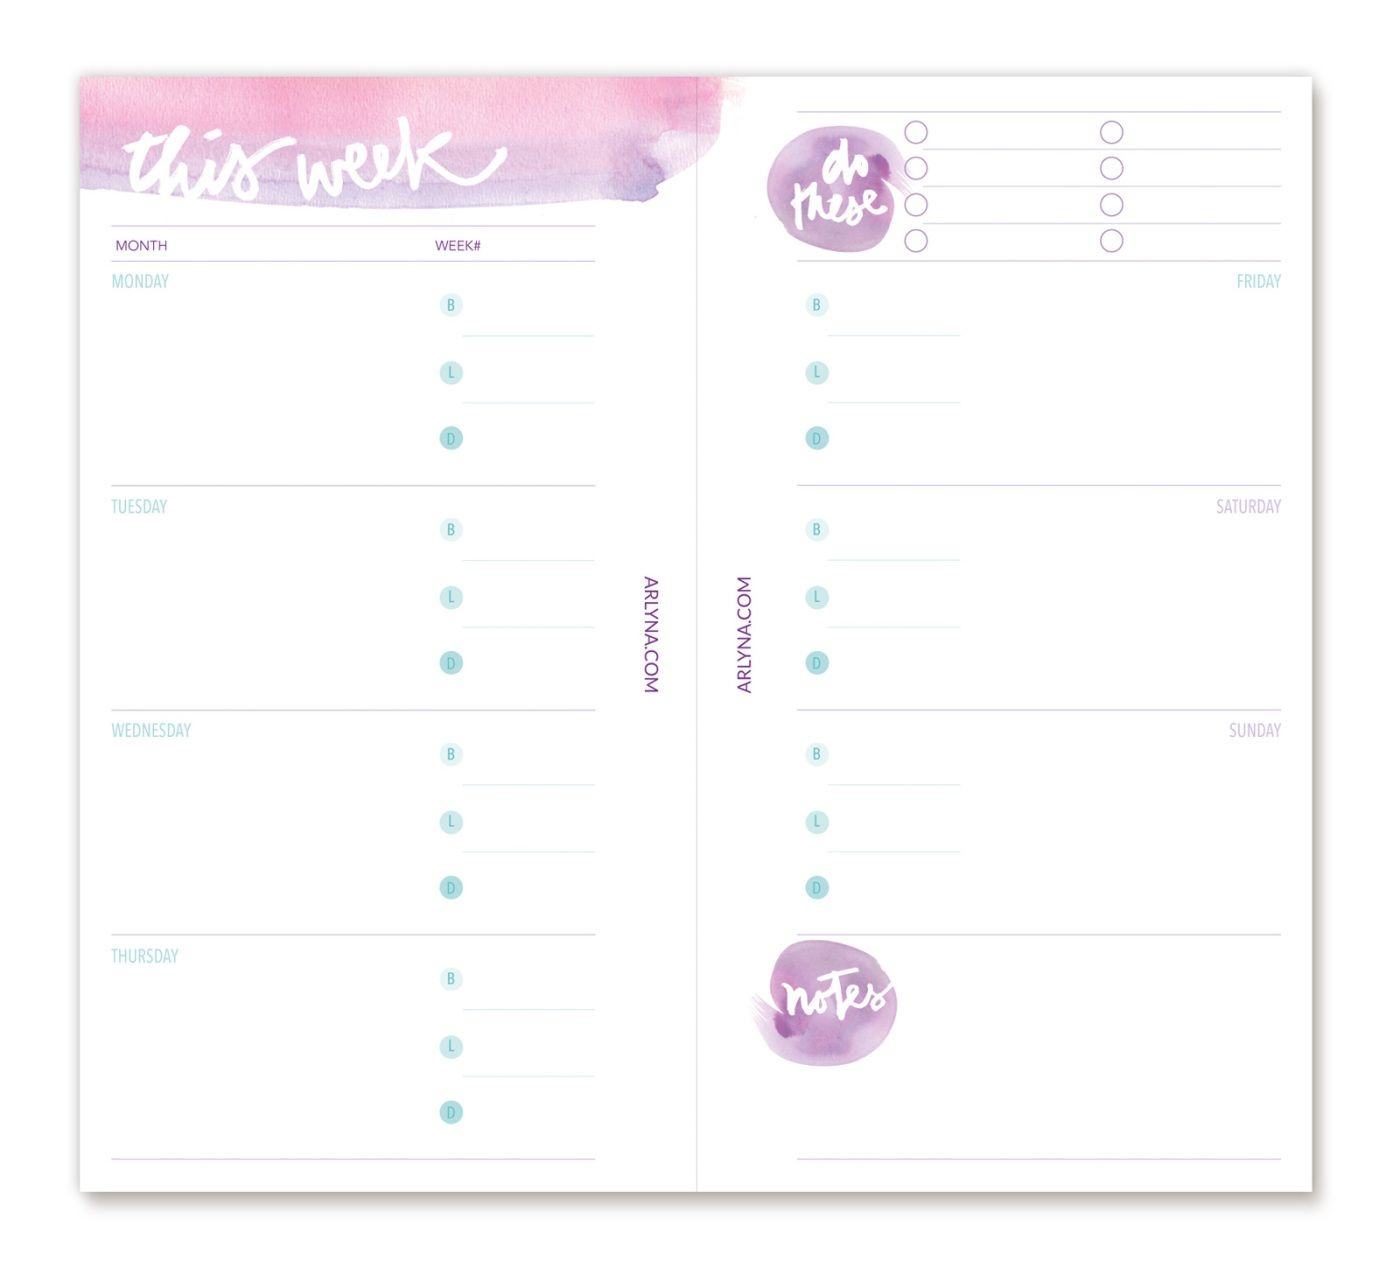 Printables | P P P Planners | Planner Pages, Planner Template - Free Filofax Printables